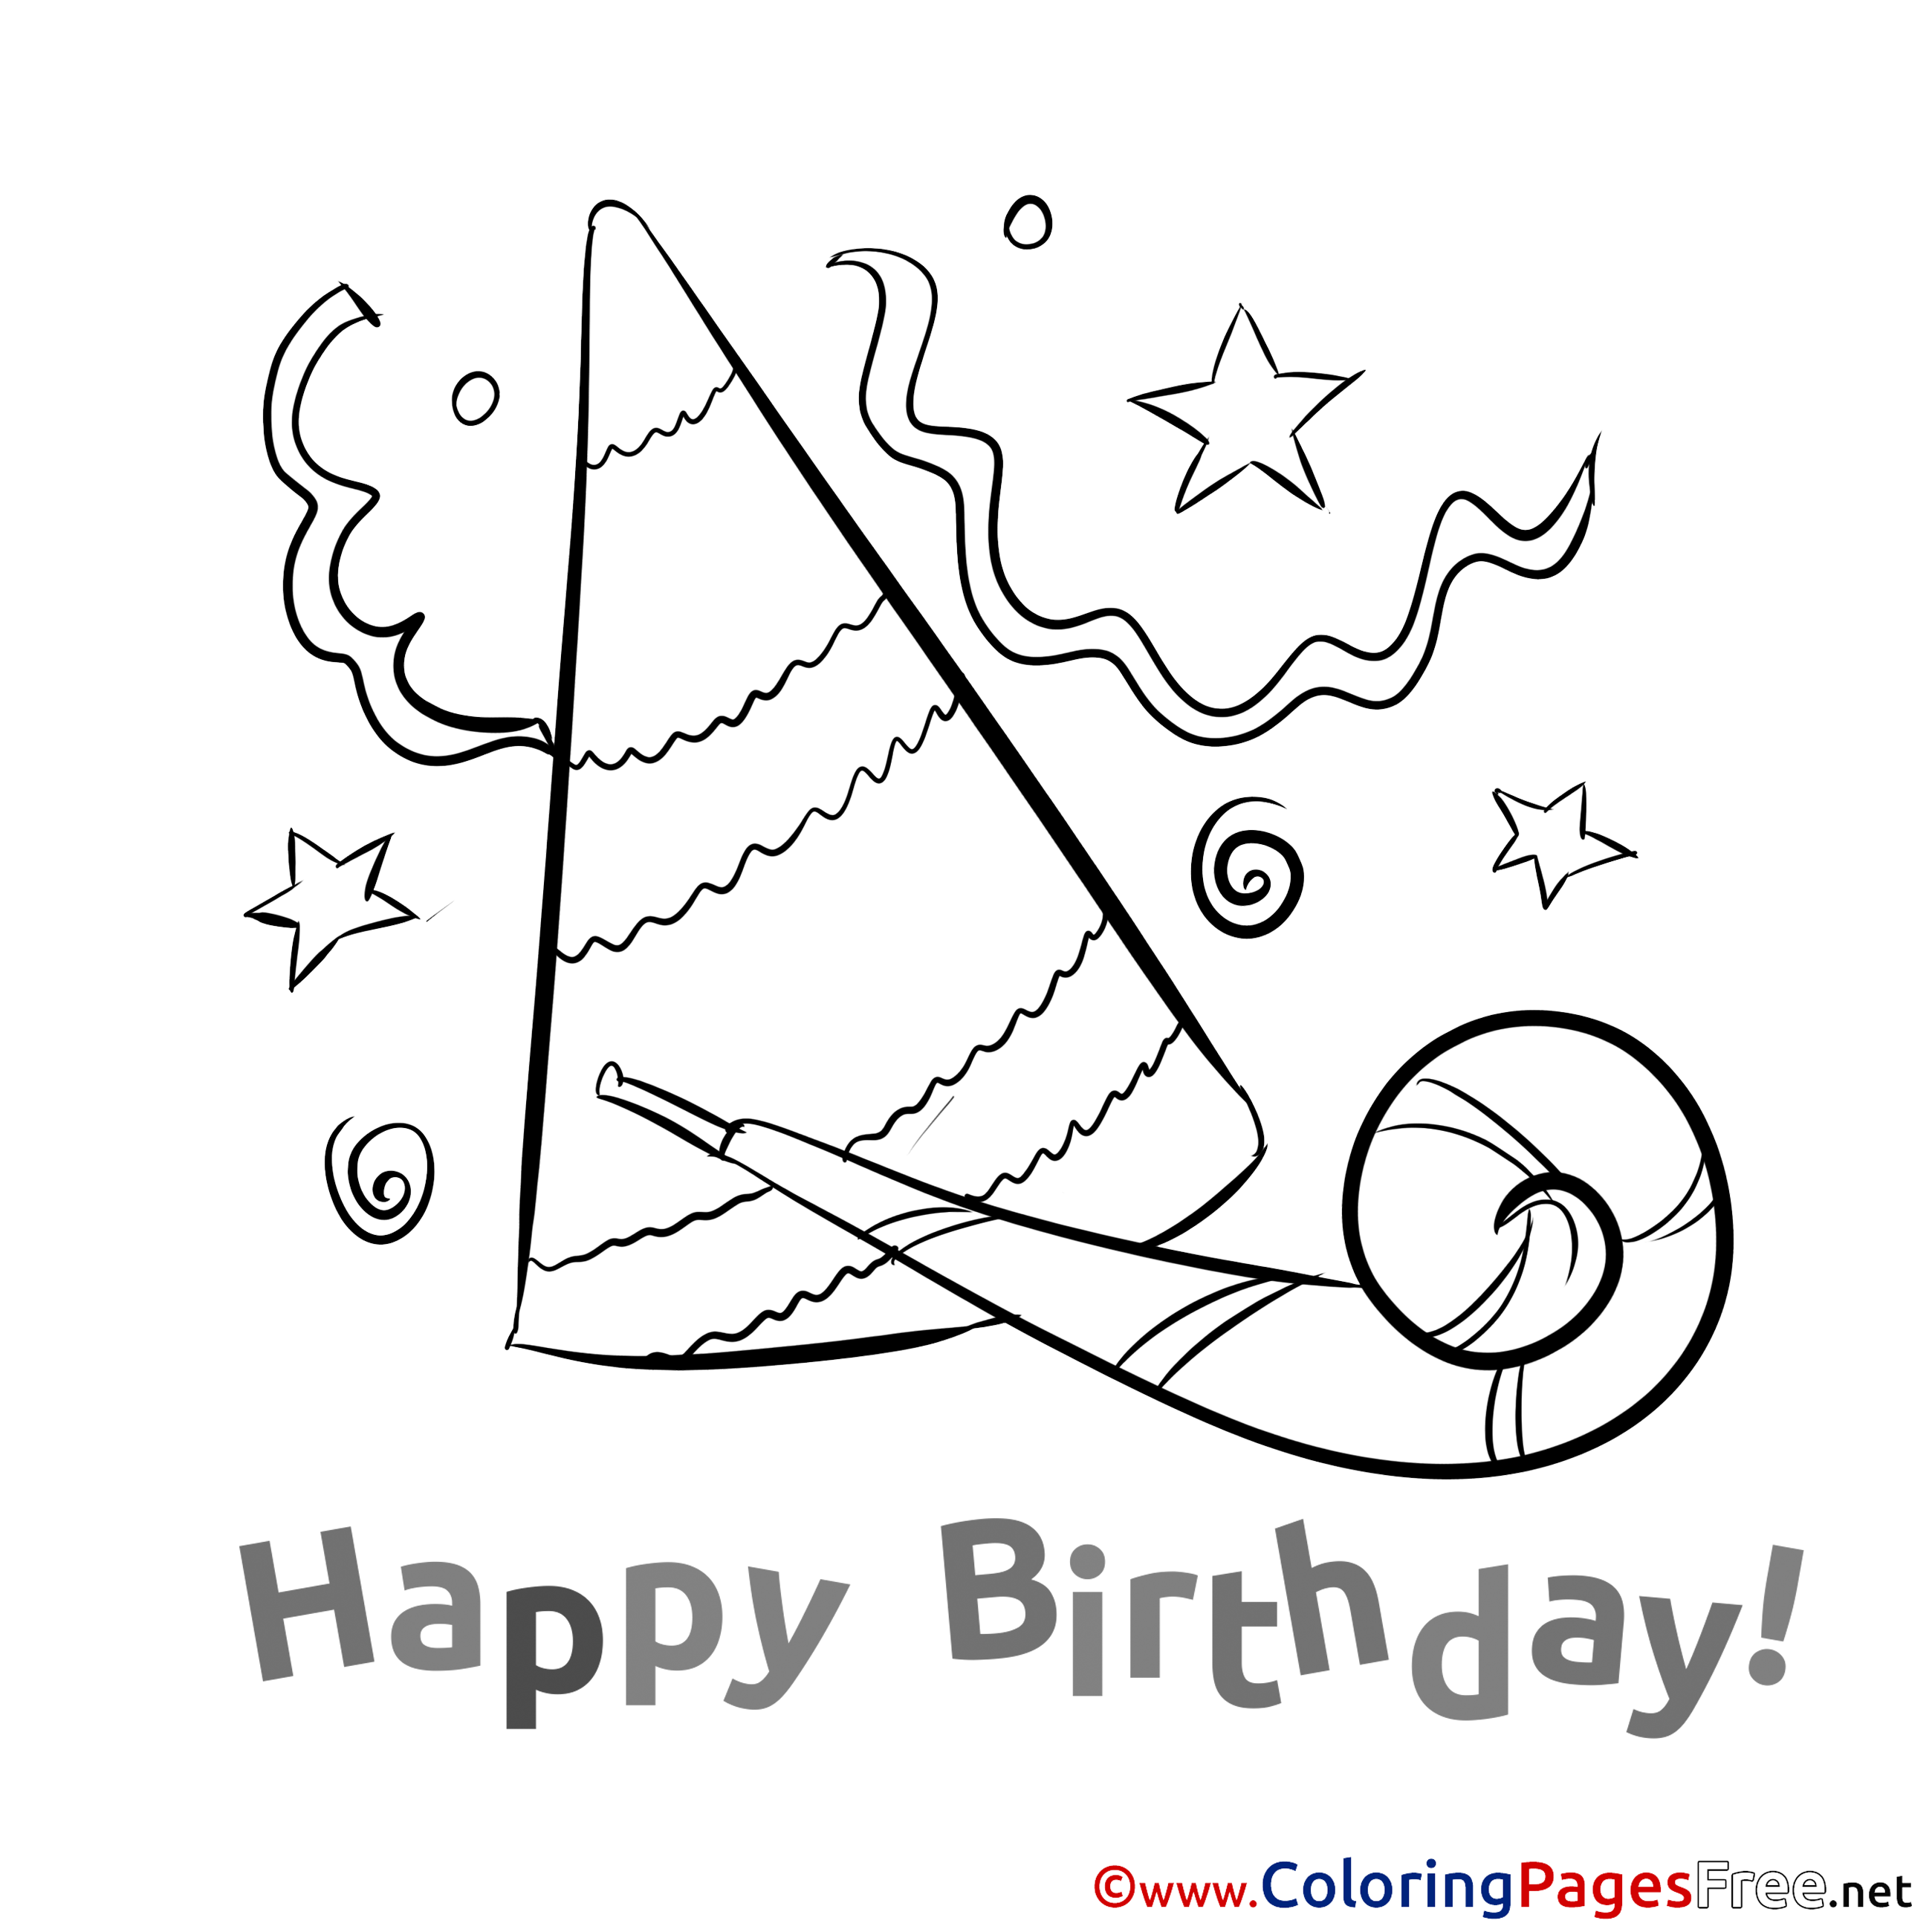 Party hat for kids happy birthday colouring page for Coloring pages of birthday hats